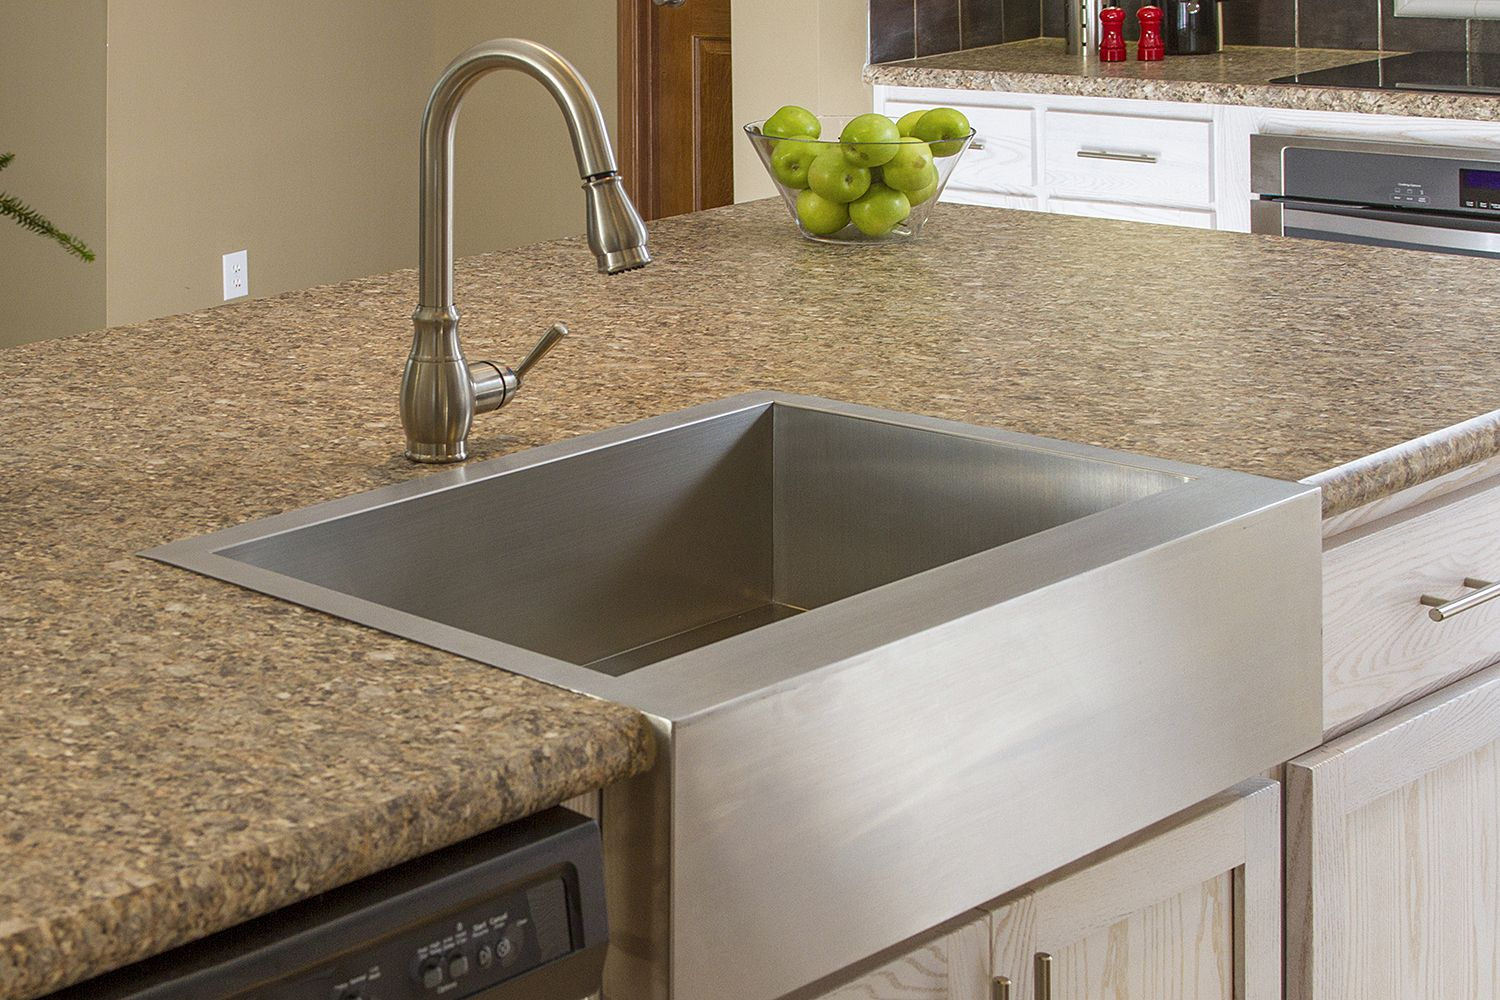 Stainless steel farmhouse sink with white and